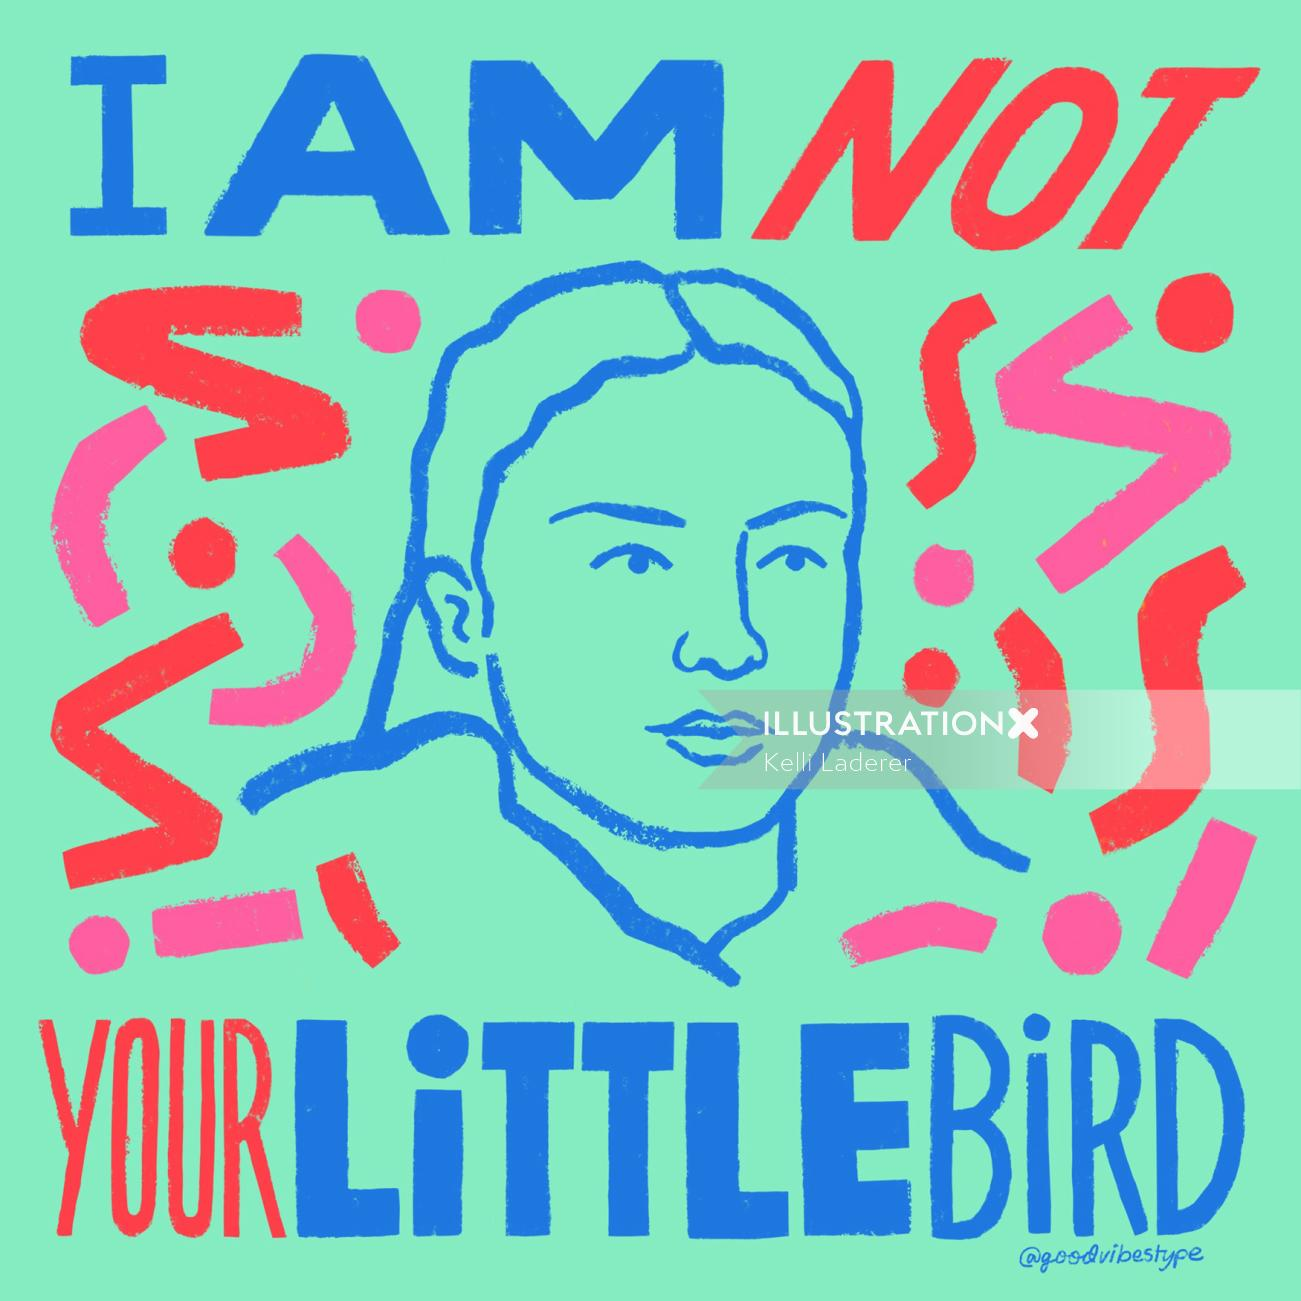 I am not your little bird